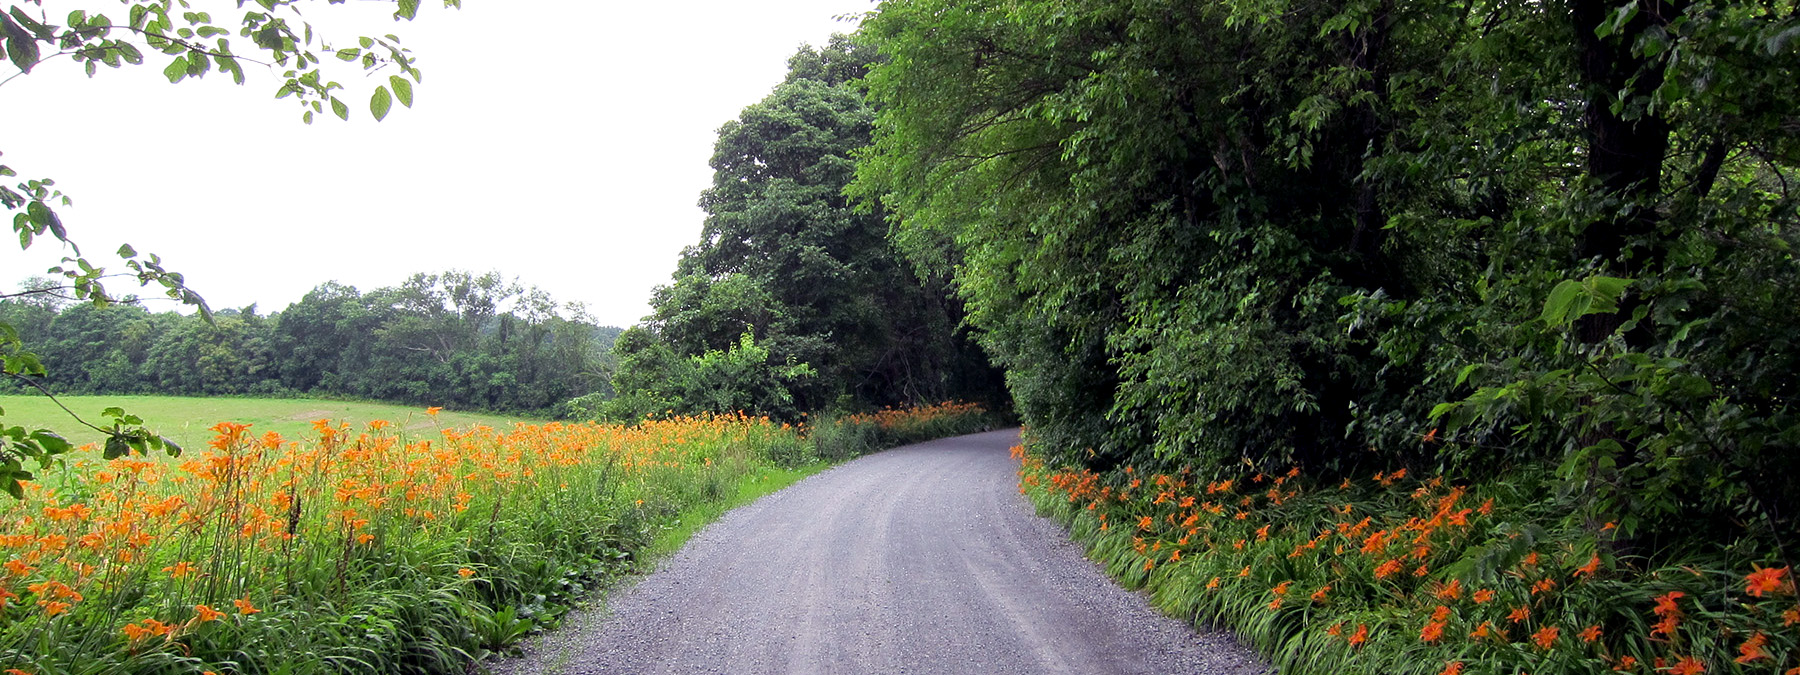 Rural road lined with daylilies